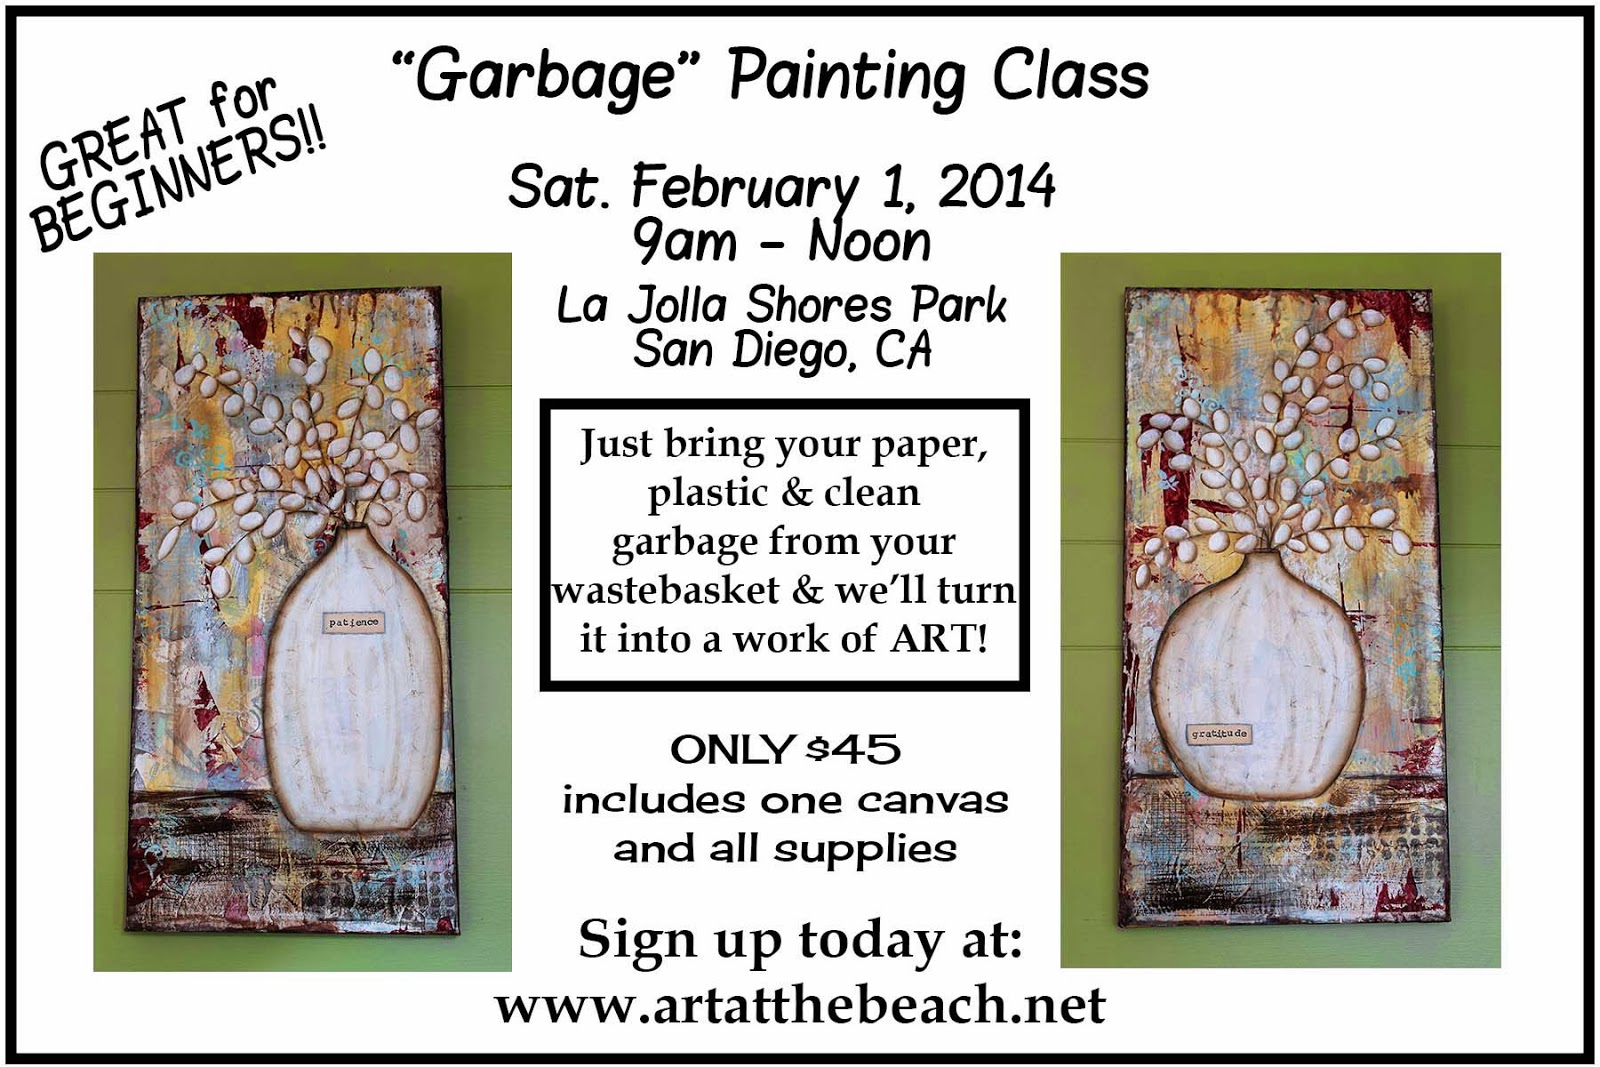 Garbage Painting Class, Beginner's Mixed Media Acrylics, Taught by Sue Allemand, www.artatthebeach.net